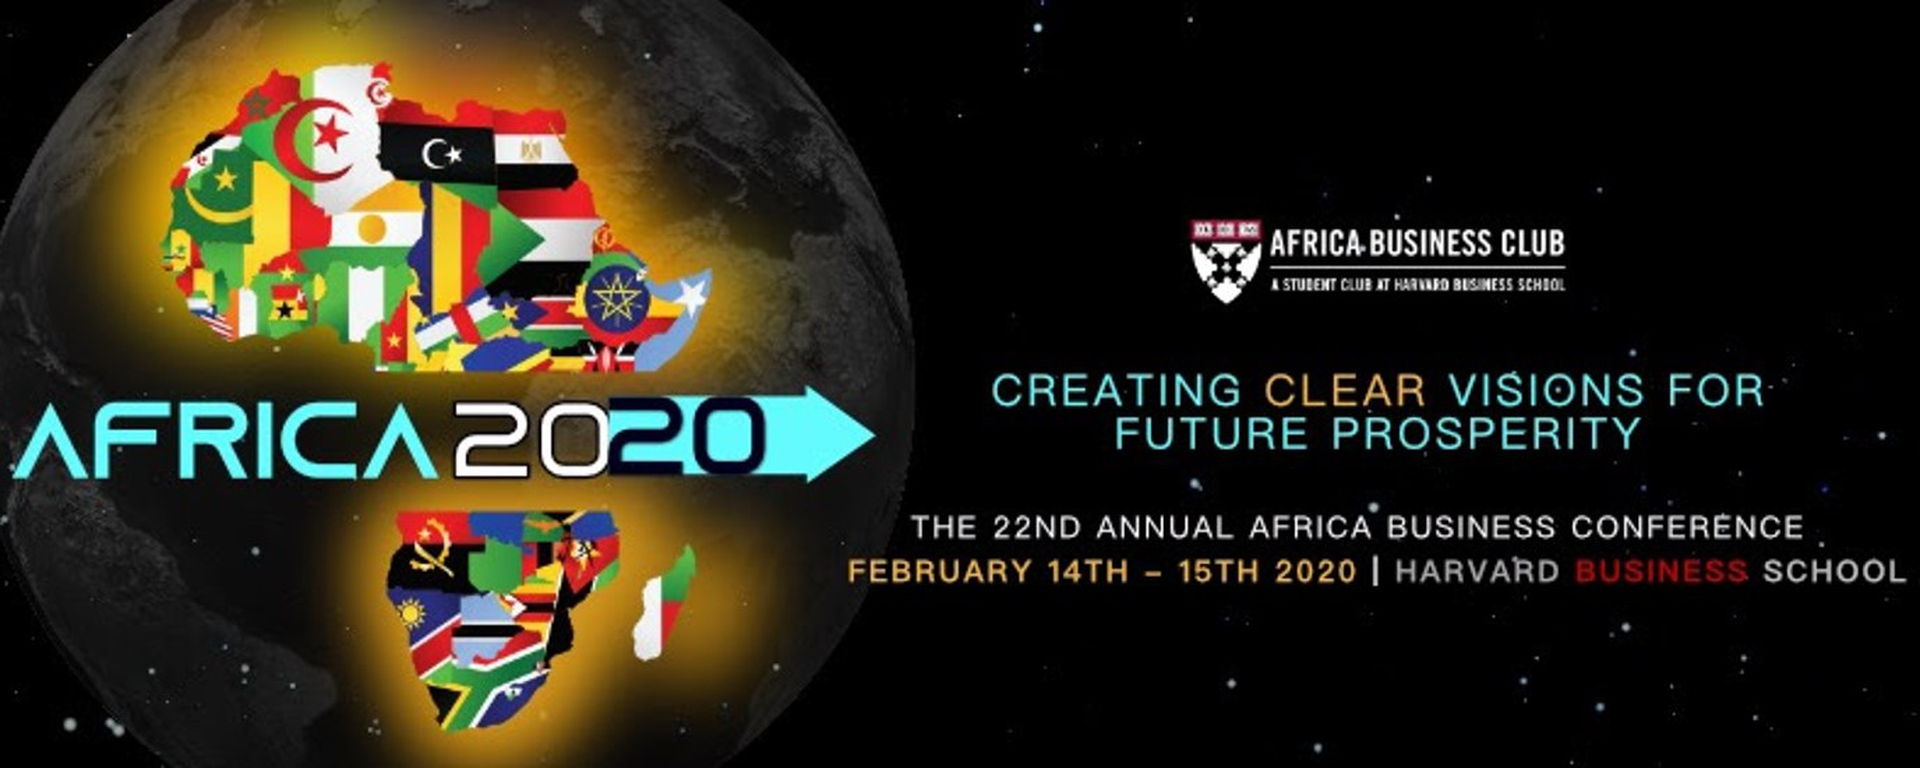 Harvard Business School Africa Business Club - HBS Africa Business Club New Venture Competition Movemeback African initiative cover image